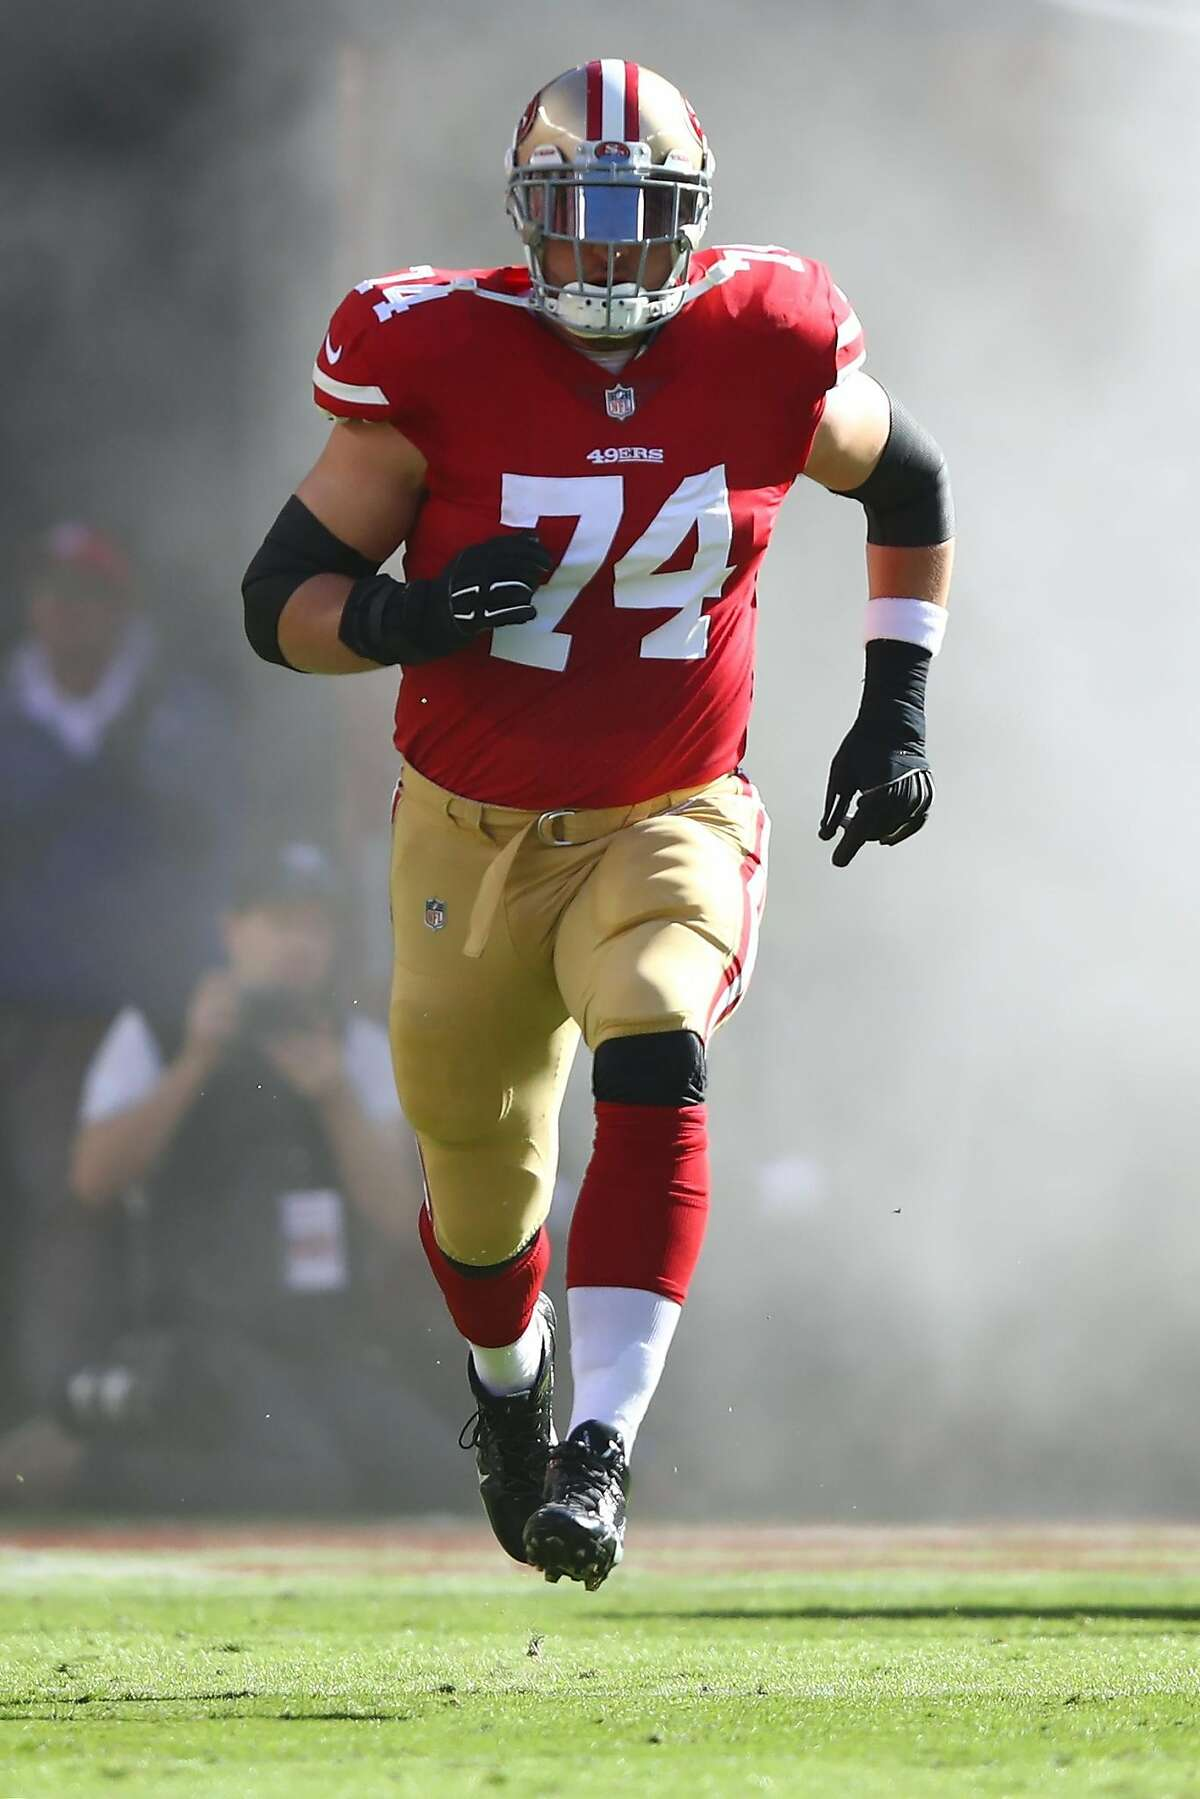 SANTA CLARA, CA - NOVEMBER 12: Joe Staley #74 of the San Francisco 49ers runs on to the field prior to playing the New York Giants in their NFL game at Levi's Stadium on November 12, 2017 in Santa Clara, California. (Photo by Ezra Shaw/Getty Images)